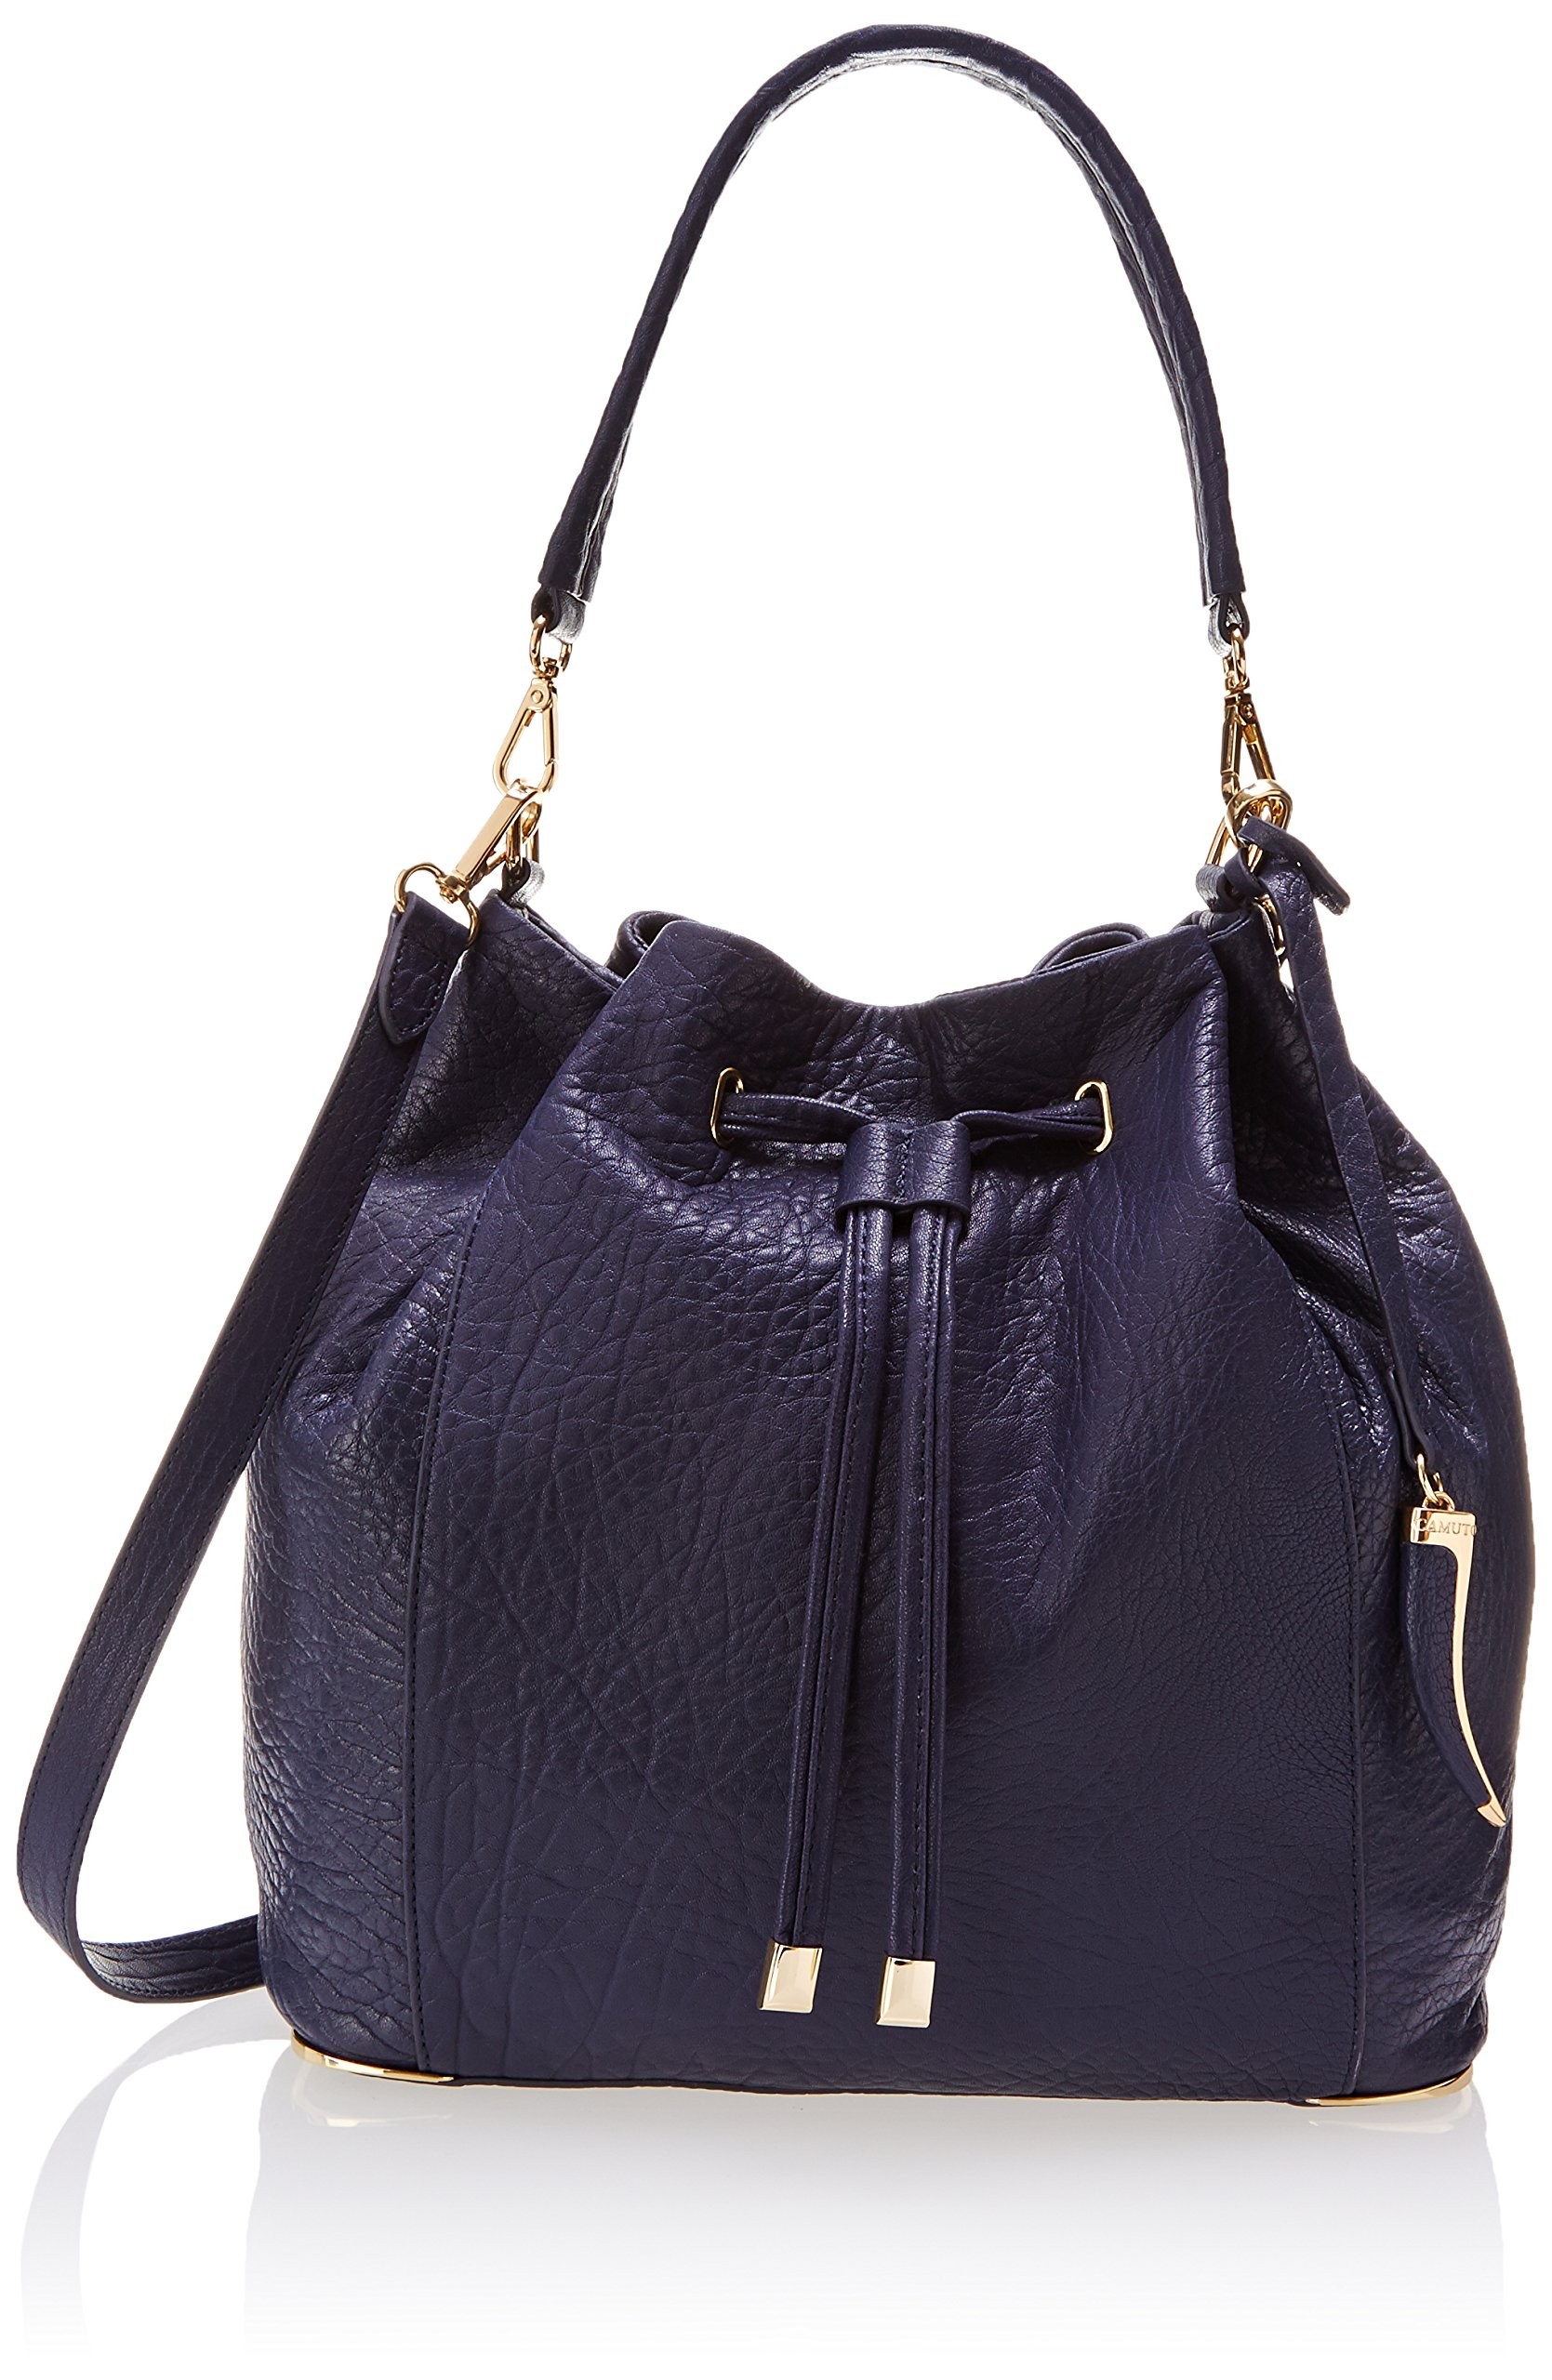 Vince Camuto Knox Drawstring Shoulder Bag,Peacoat,One Size,Peacoat,One Size